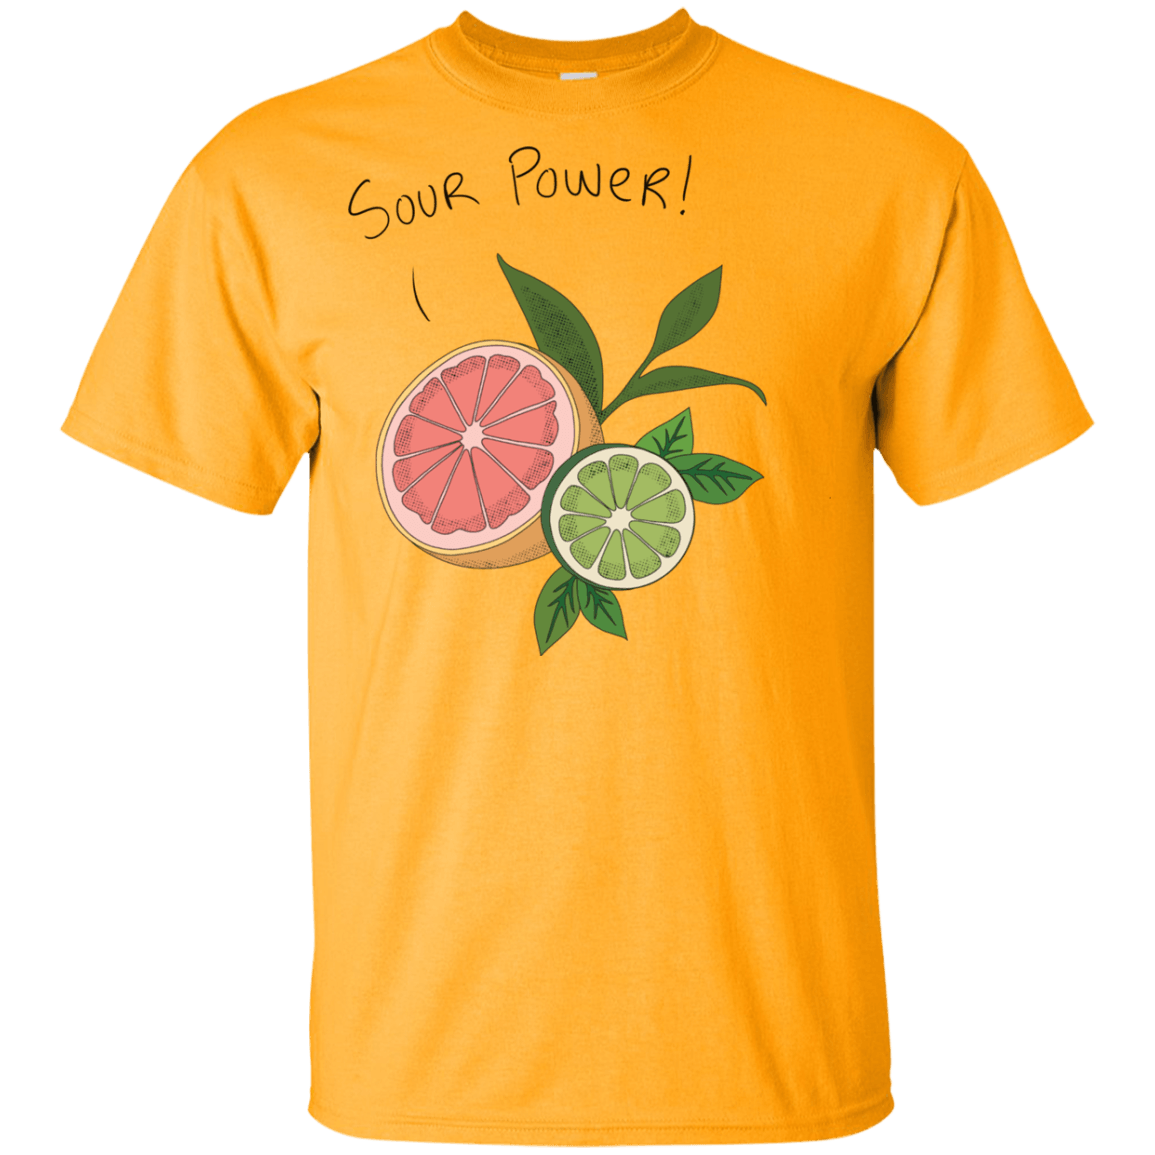 Sour Power! Youth T-Shirt